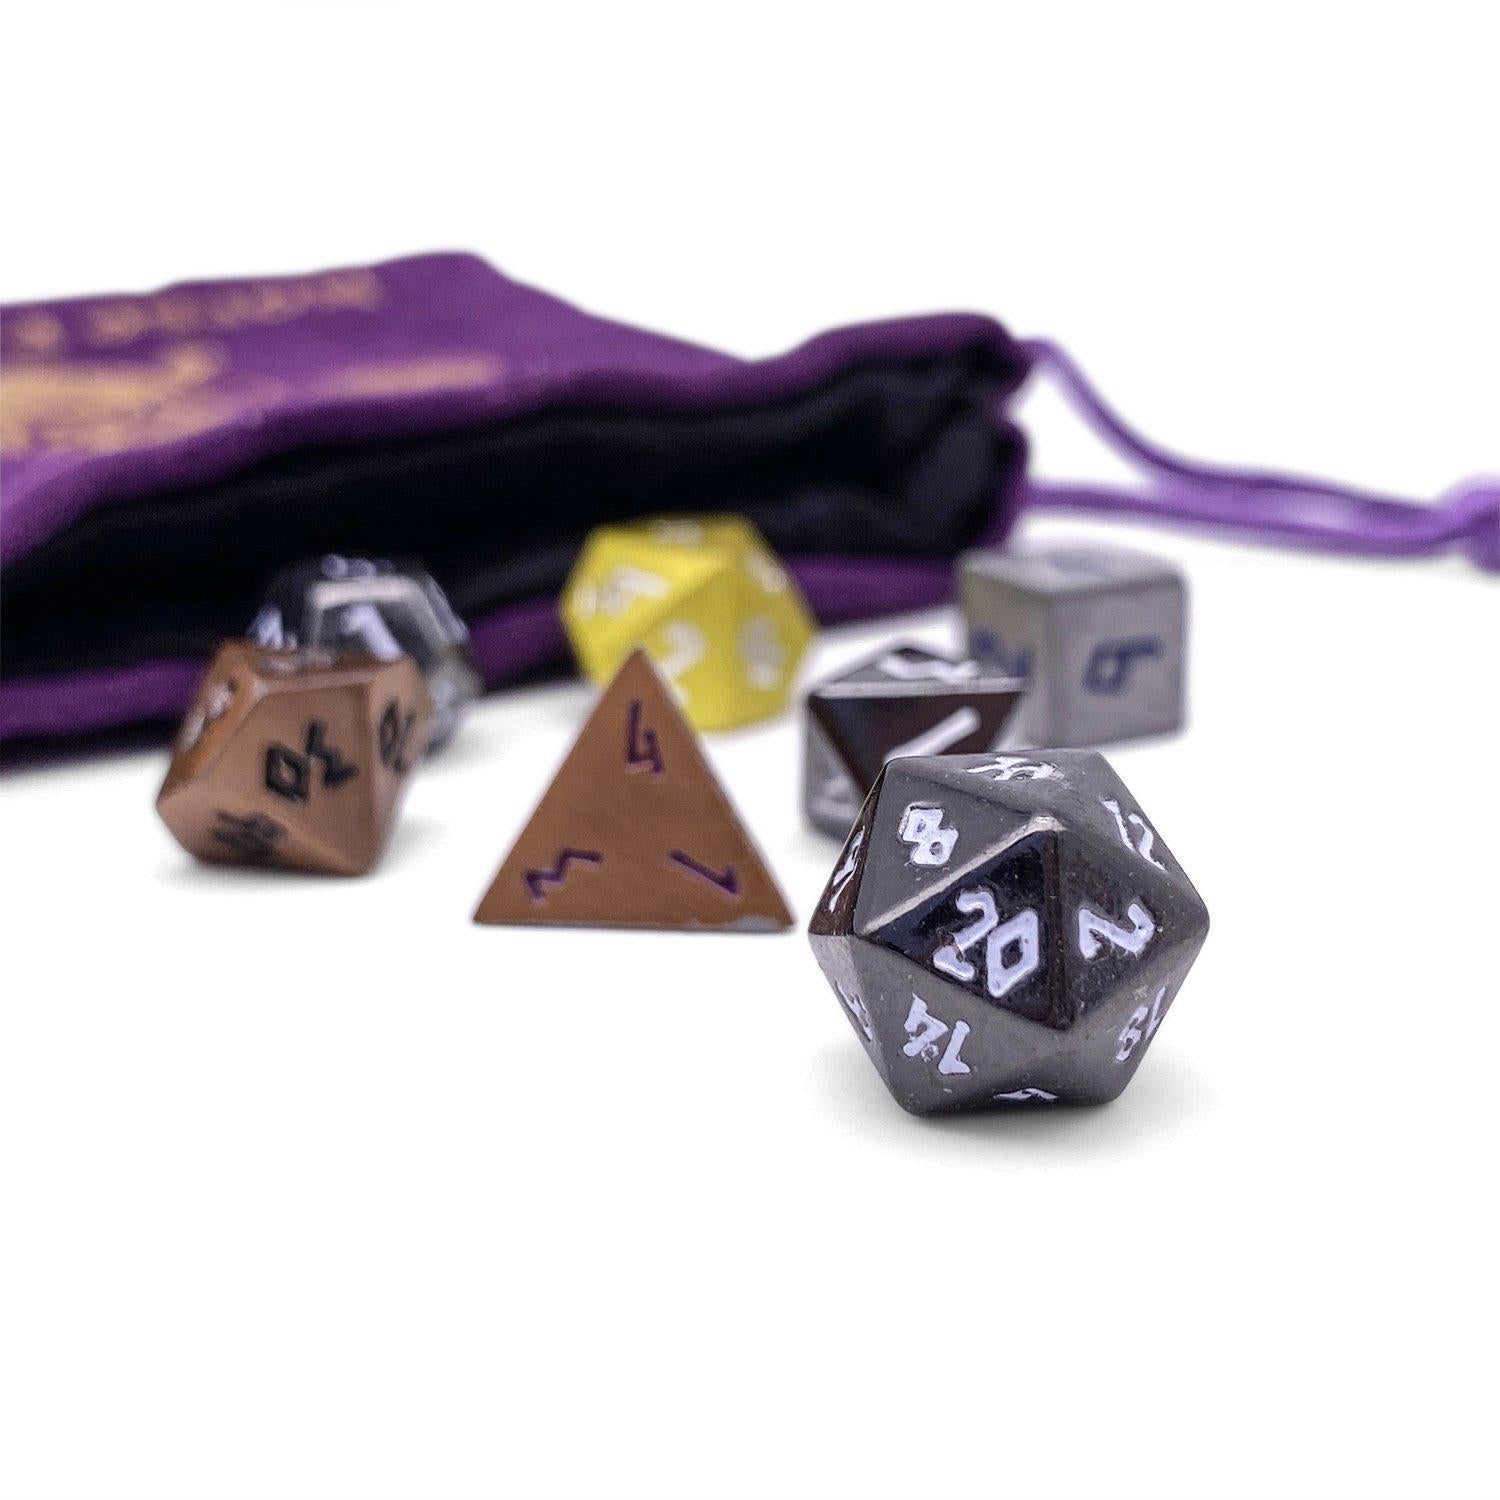 Misfit Dice Pebbles Norse Foundry Whether you're a dice collector or a casual gamer, this is the place for dice! misfit dice pebbles